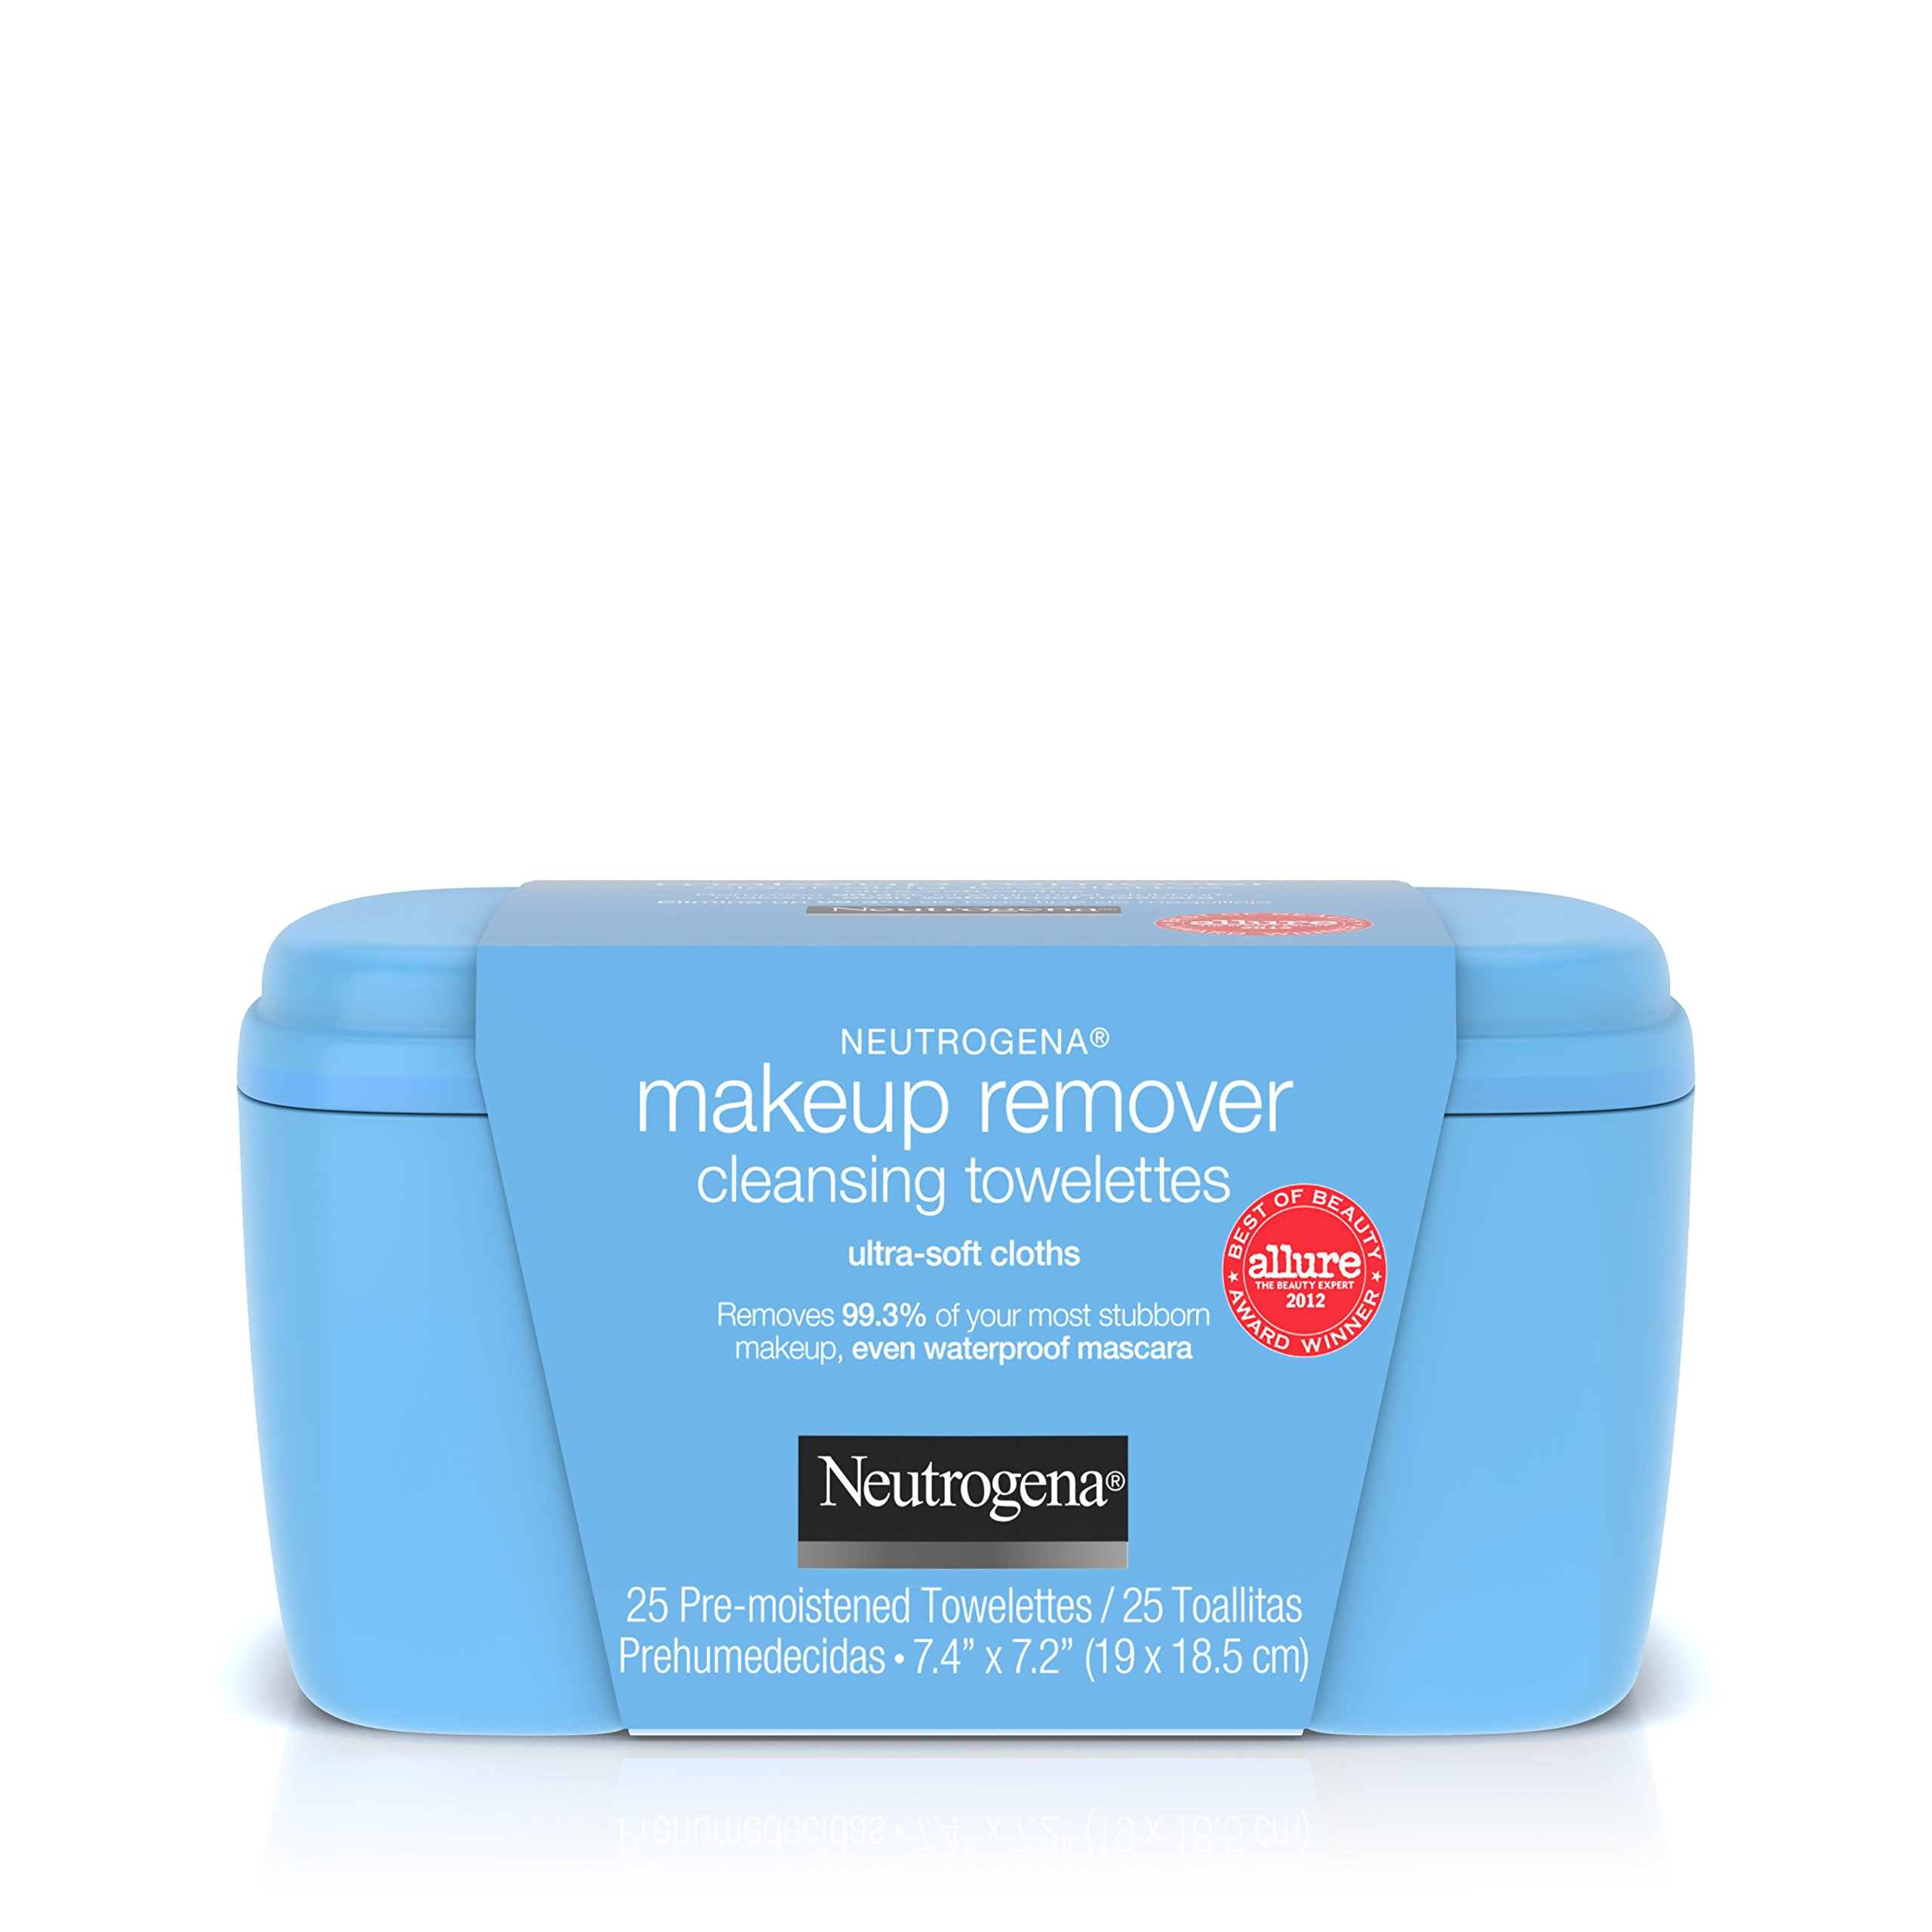 Neutrogena Makeup Remover Cleansing Towelettes & Wipes, 25 Count